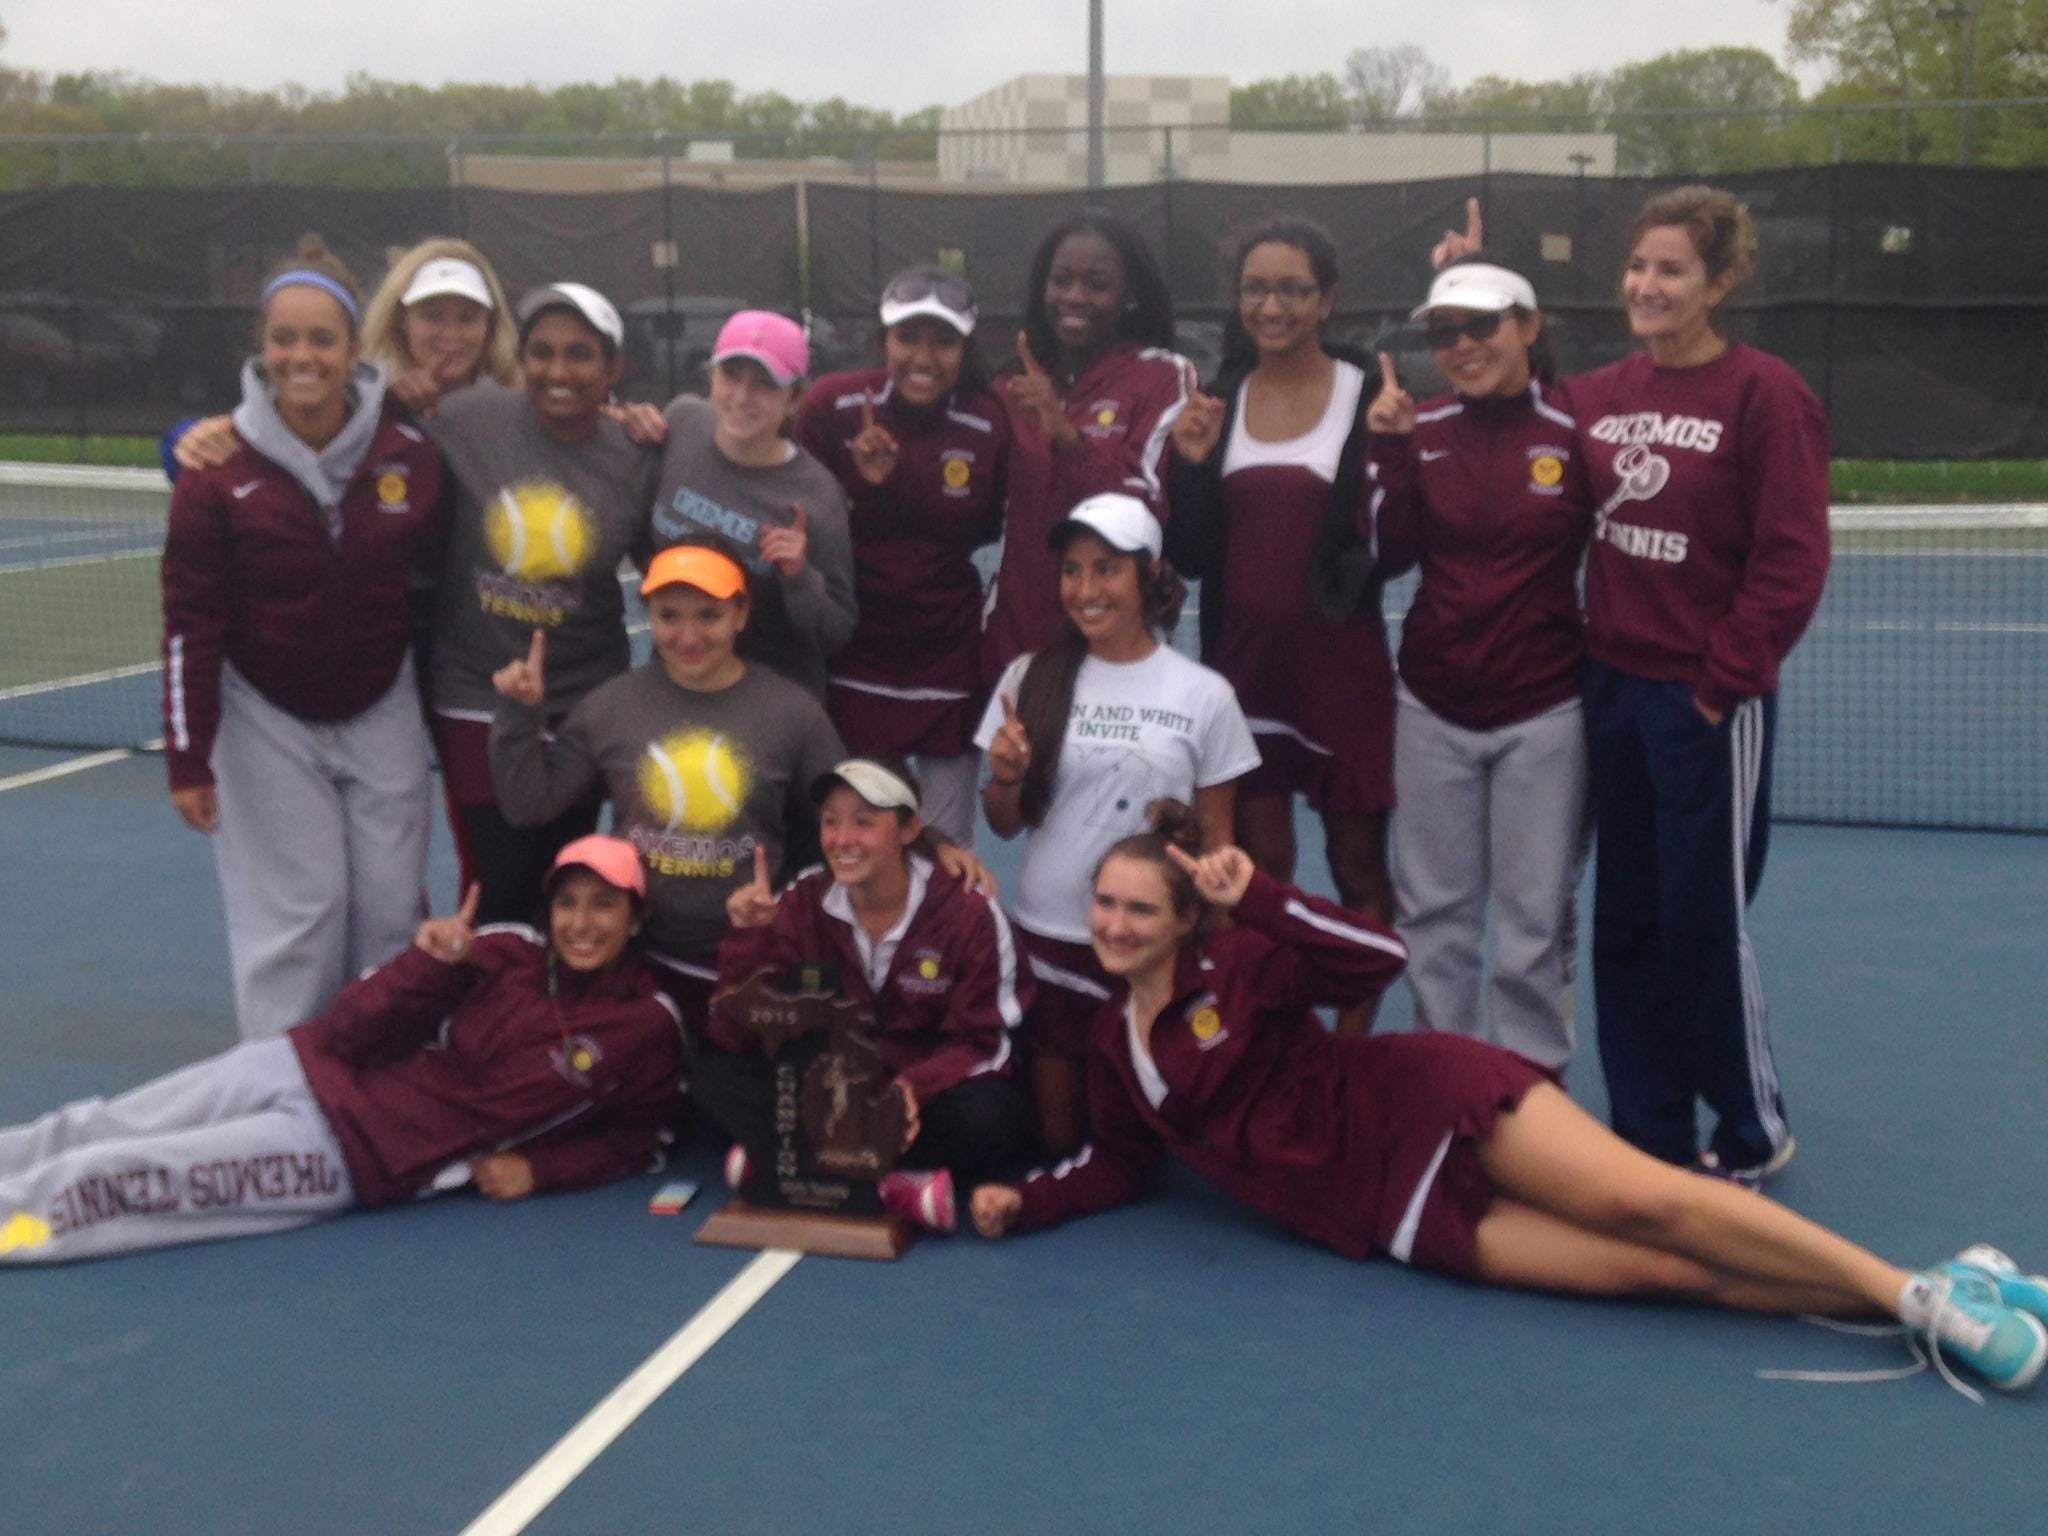 Okemos' girls tennis team will seek its first Division 2 state championship since 2001 at this weekend's state finals at Kalamazoo College.